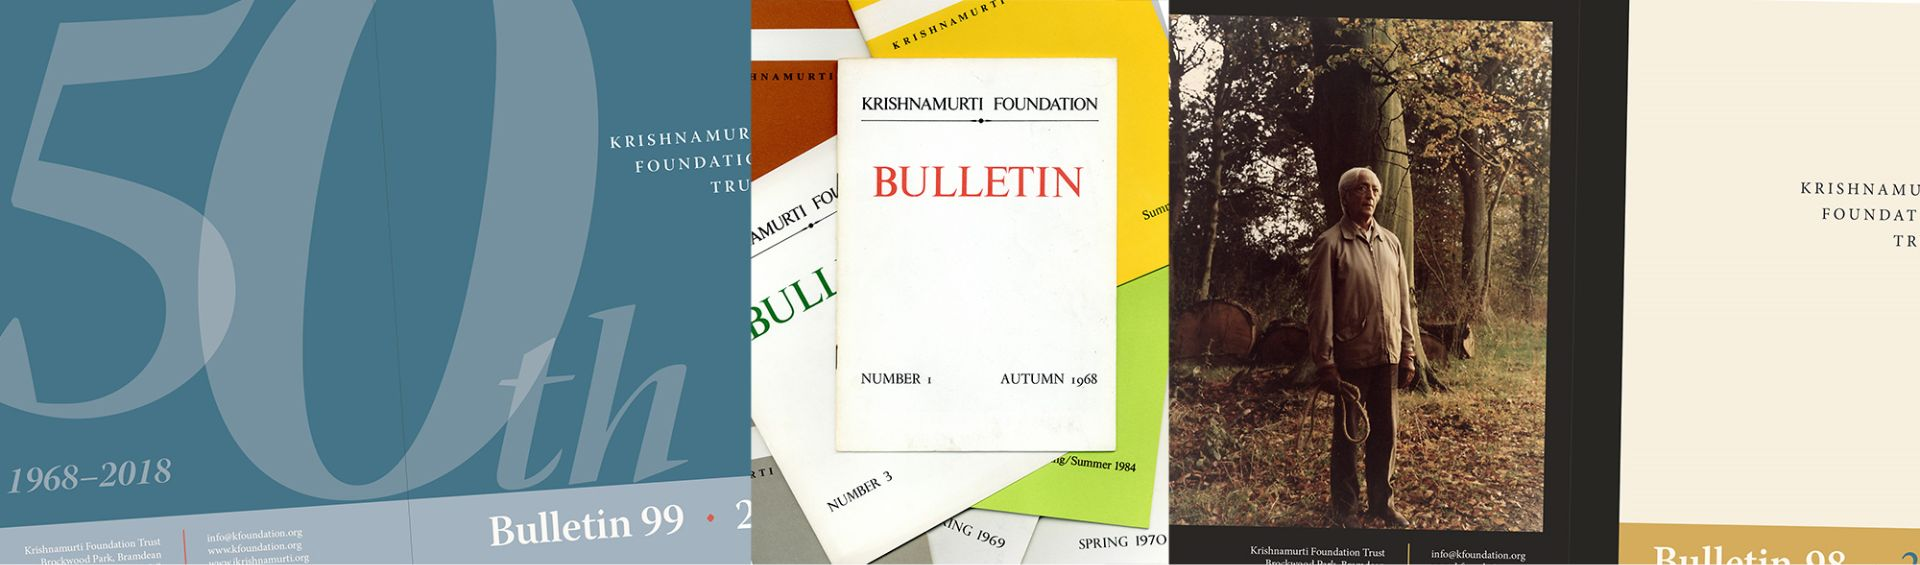 A collage of covers of Krishnamurti Foundation Trust bulletins